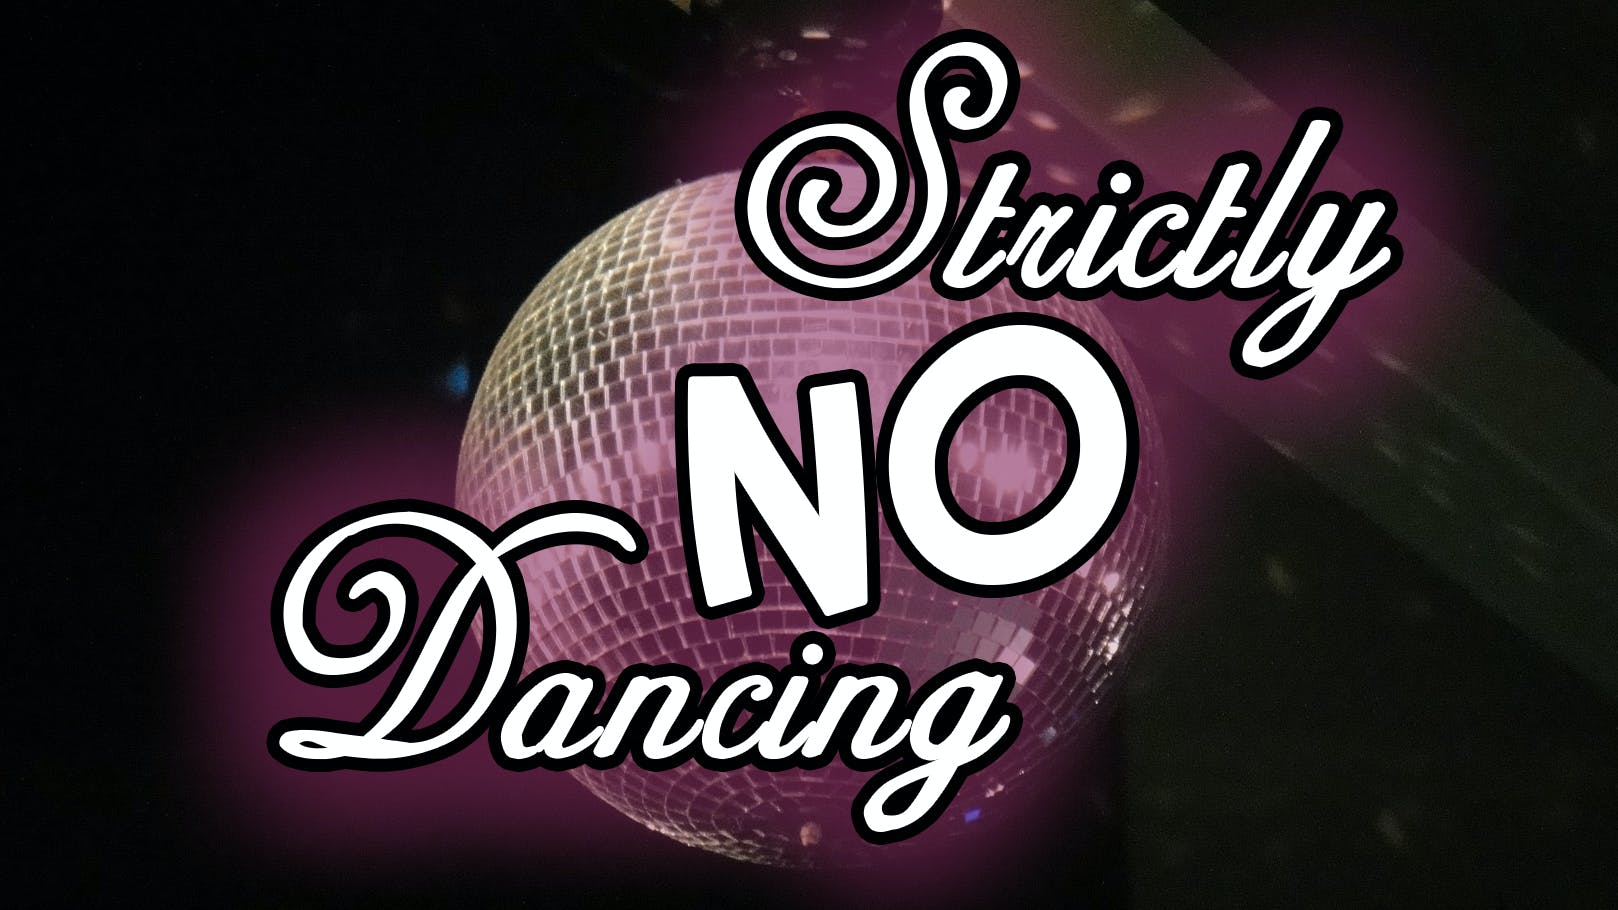 Strictly No Dancing!